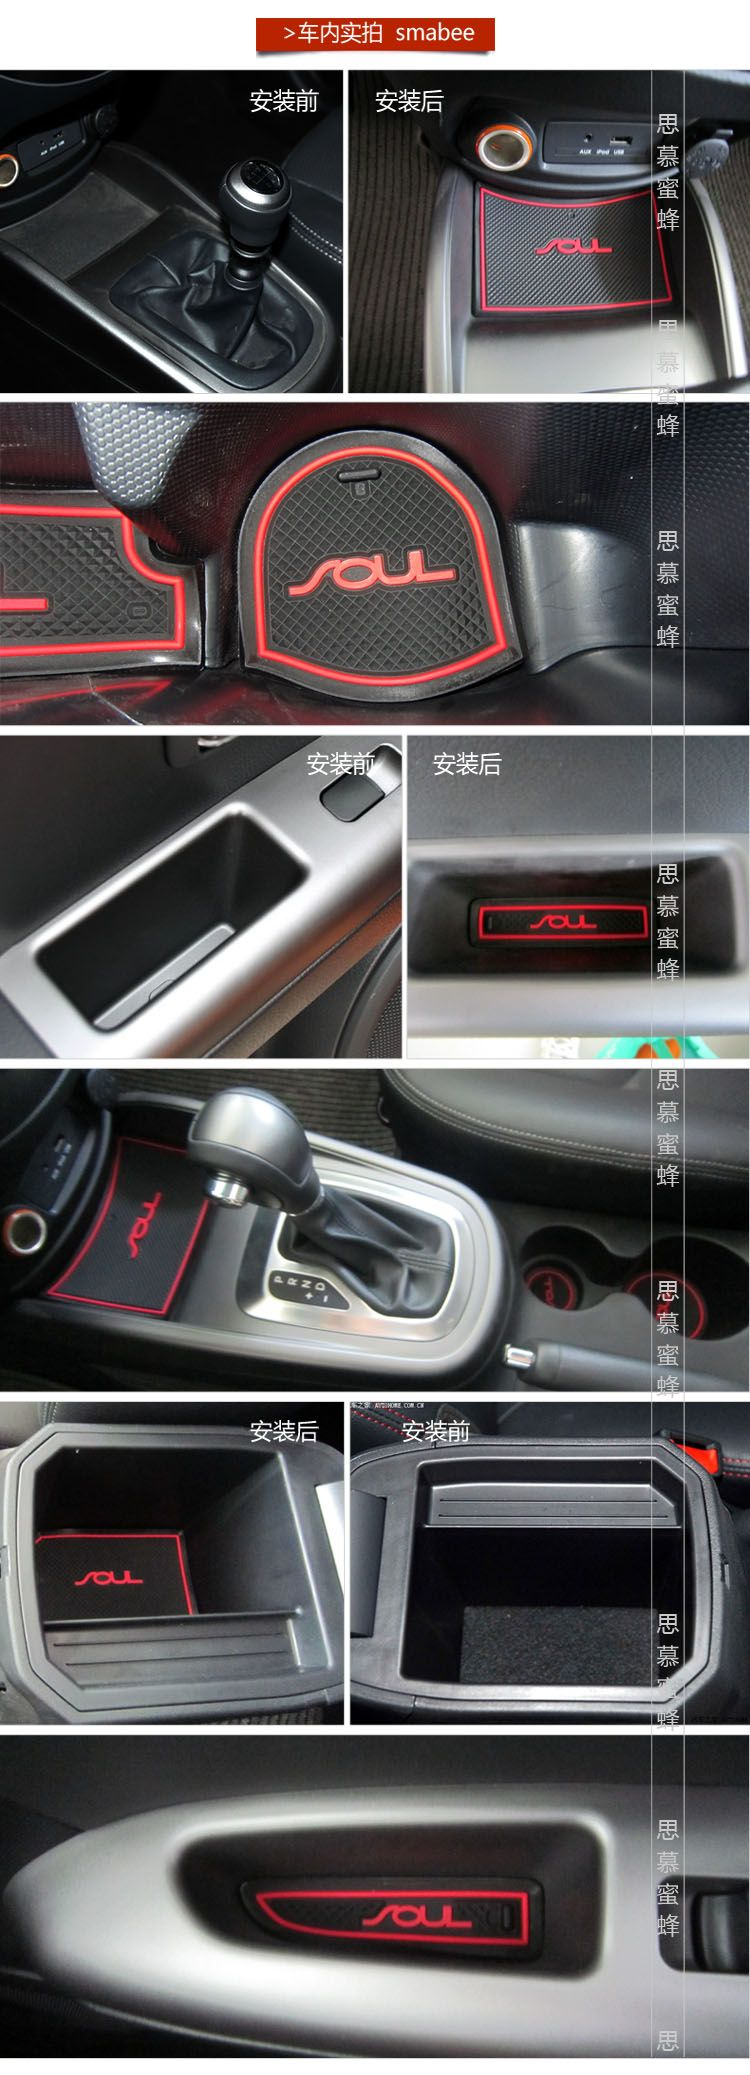 wholesale non kia slot silicone teacup pad glow soul accessories gate pin